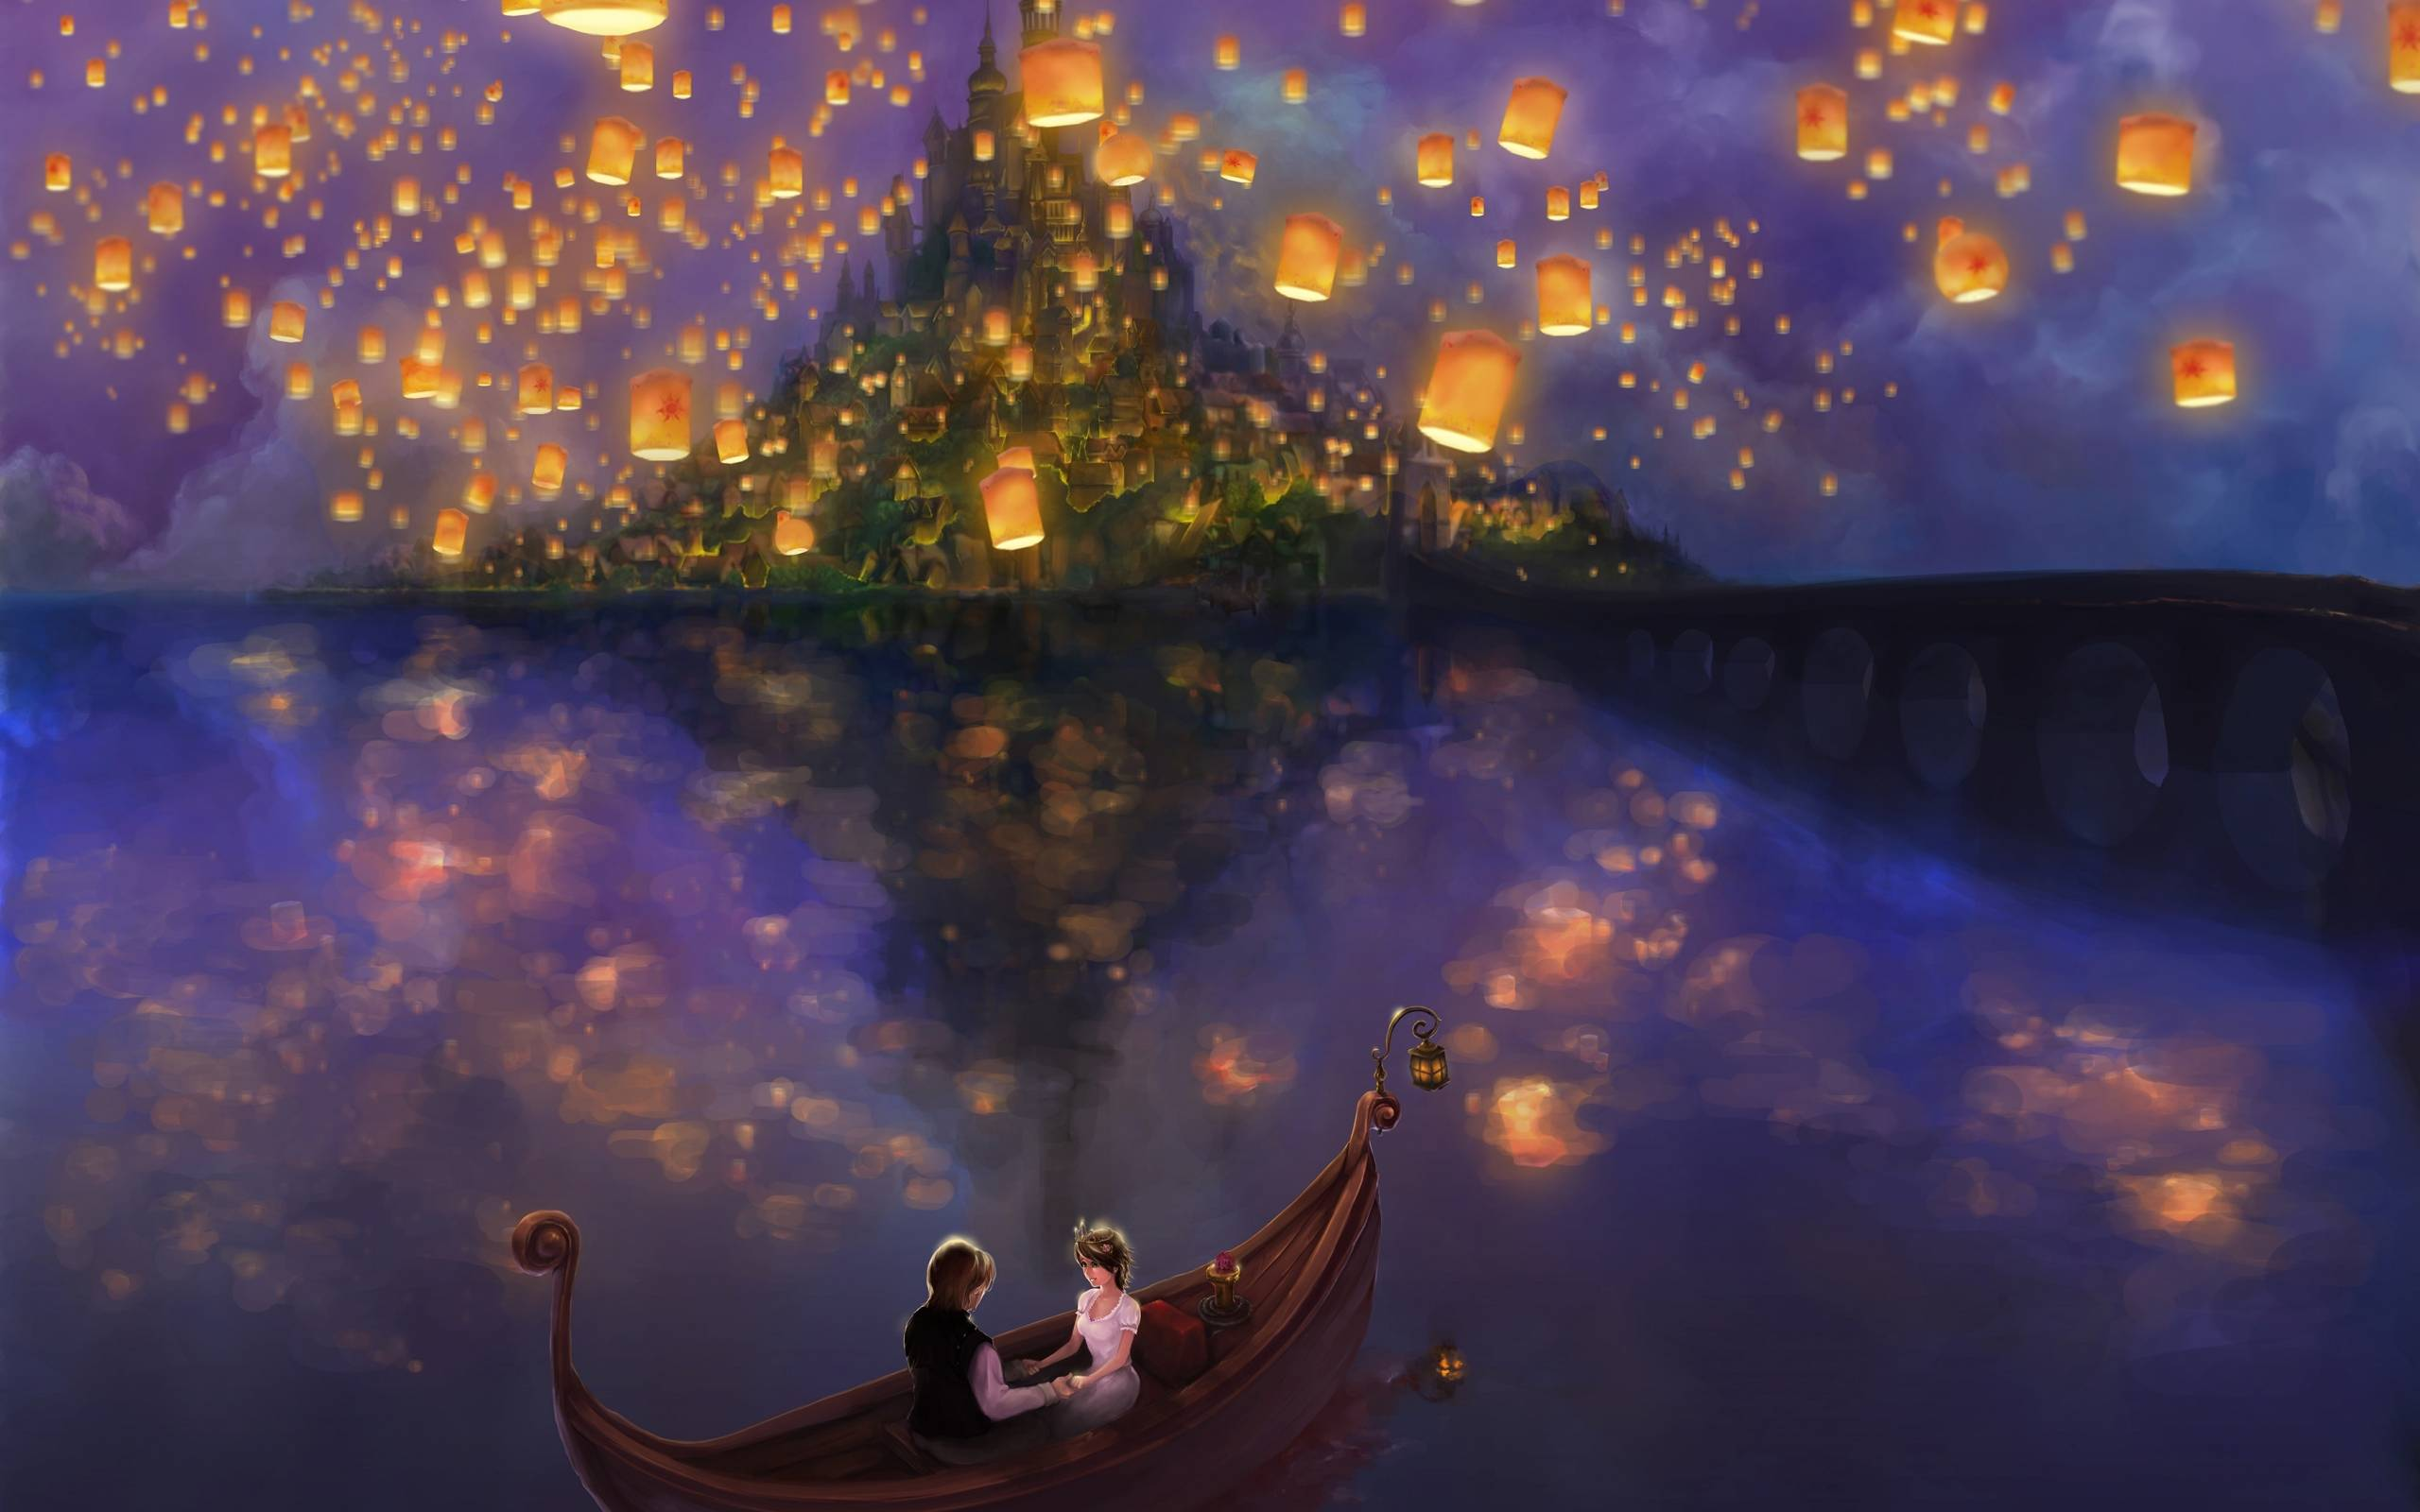 rapunzel lanterns background wwwimgkidcom the image